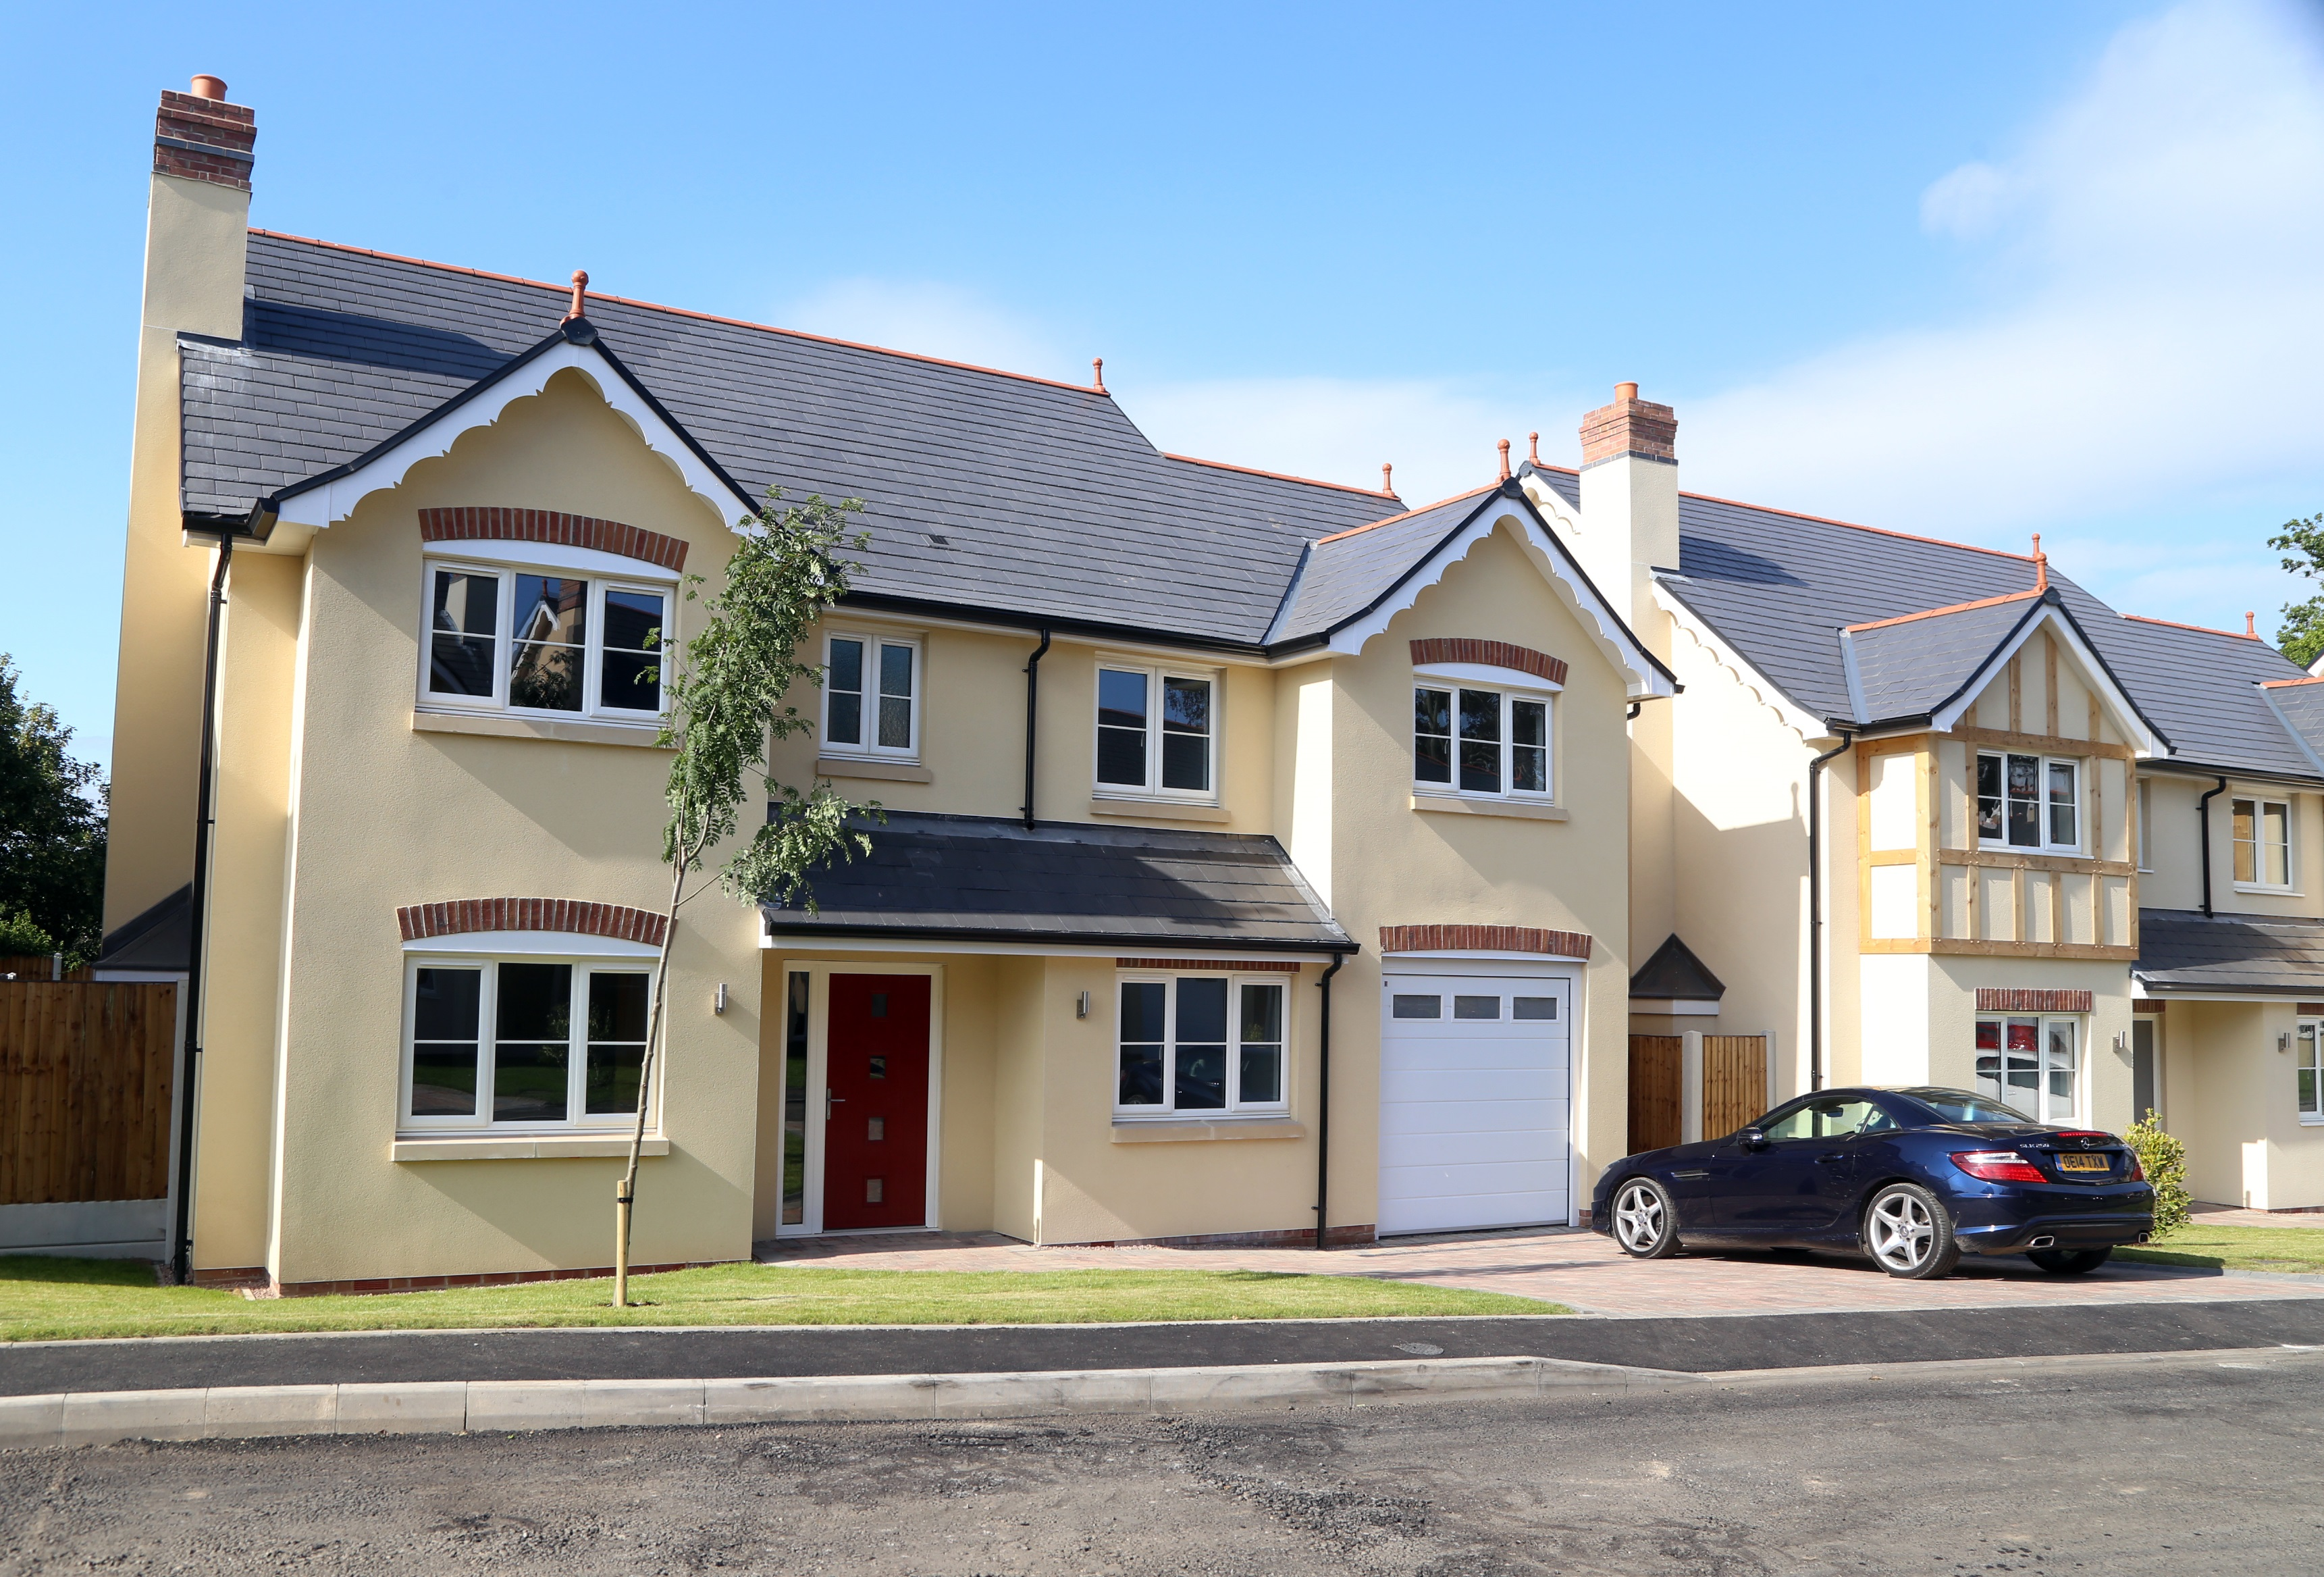 All homes sold at prime Shrewsbury development